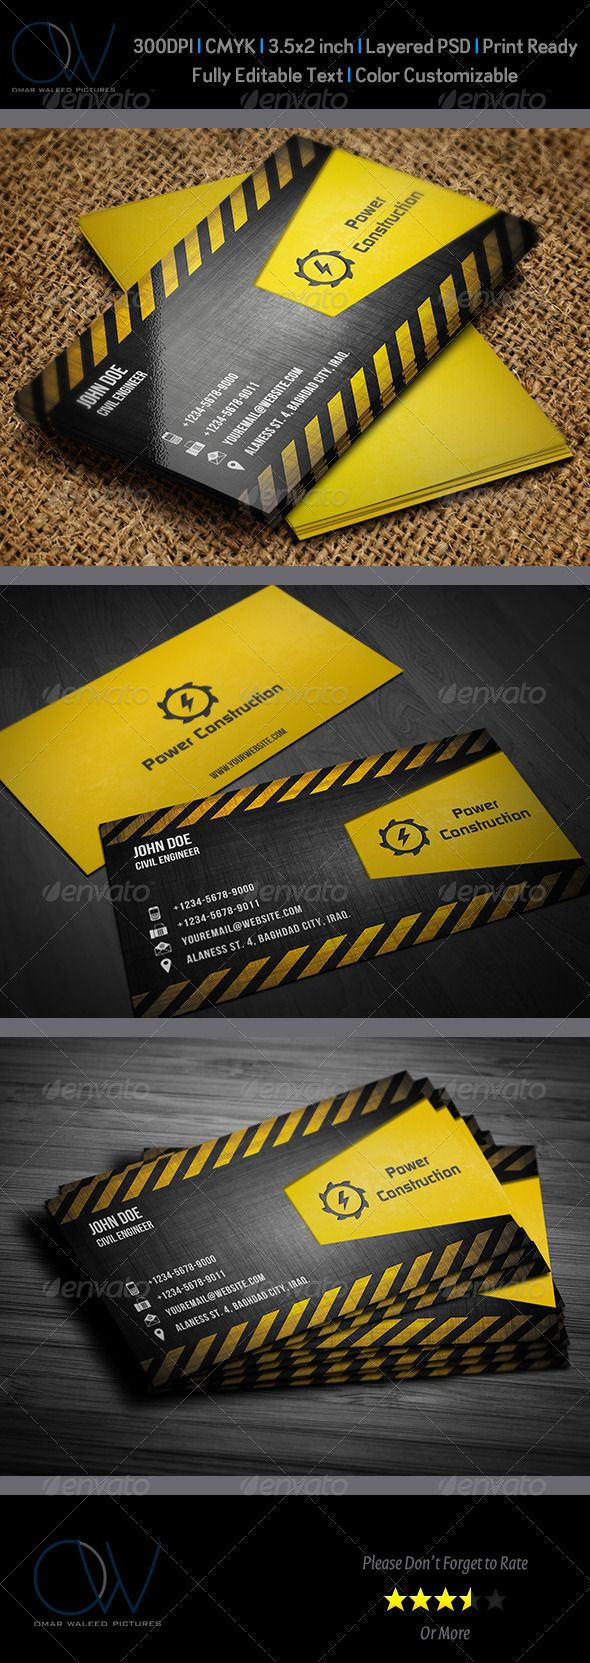 118 best business design images on pinterest business cards construction business card magicingreecefo Images